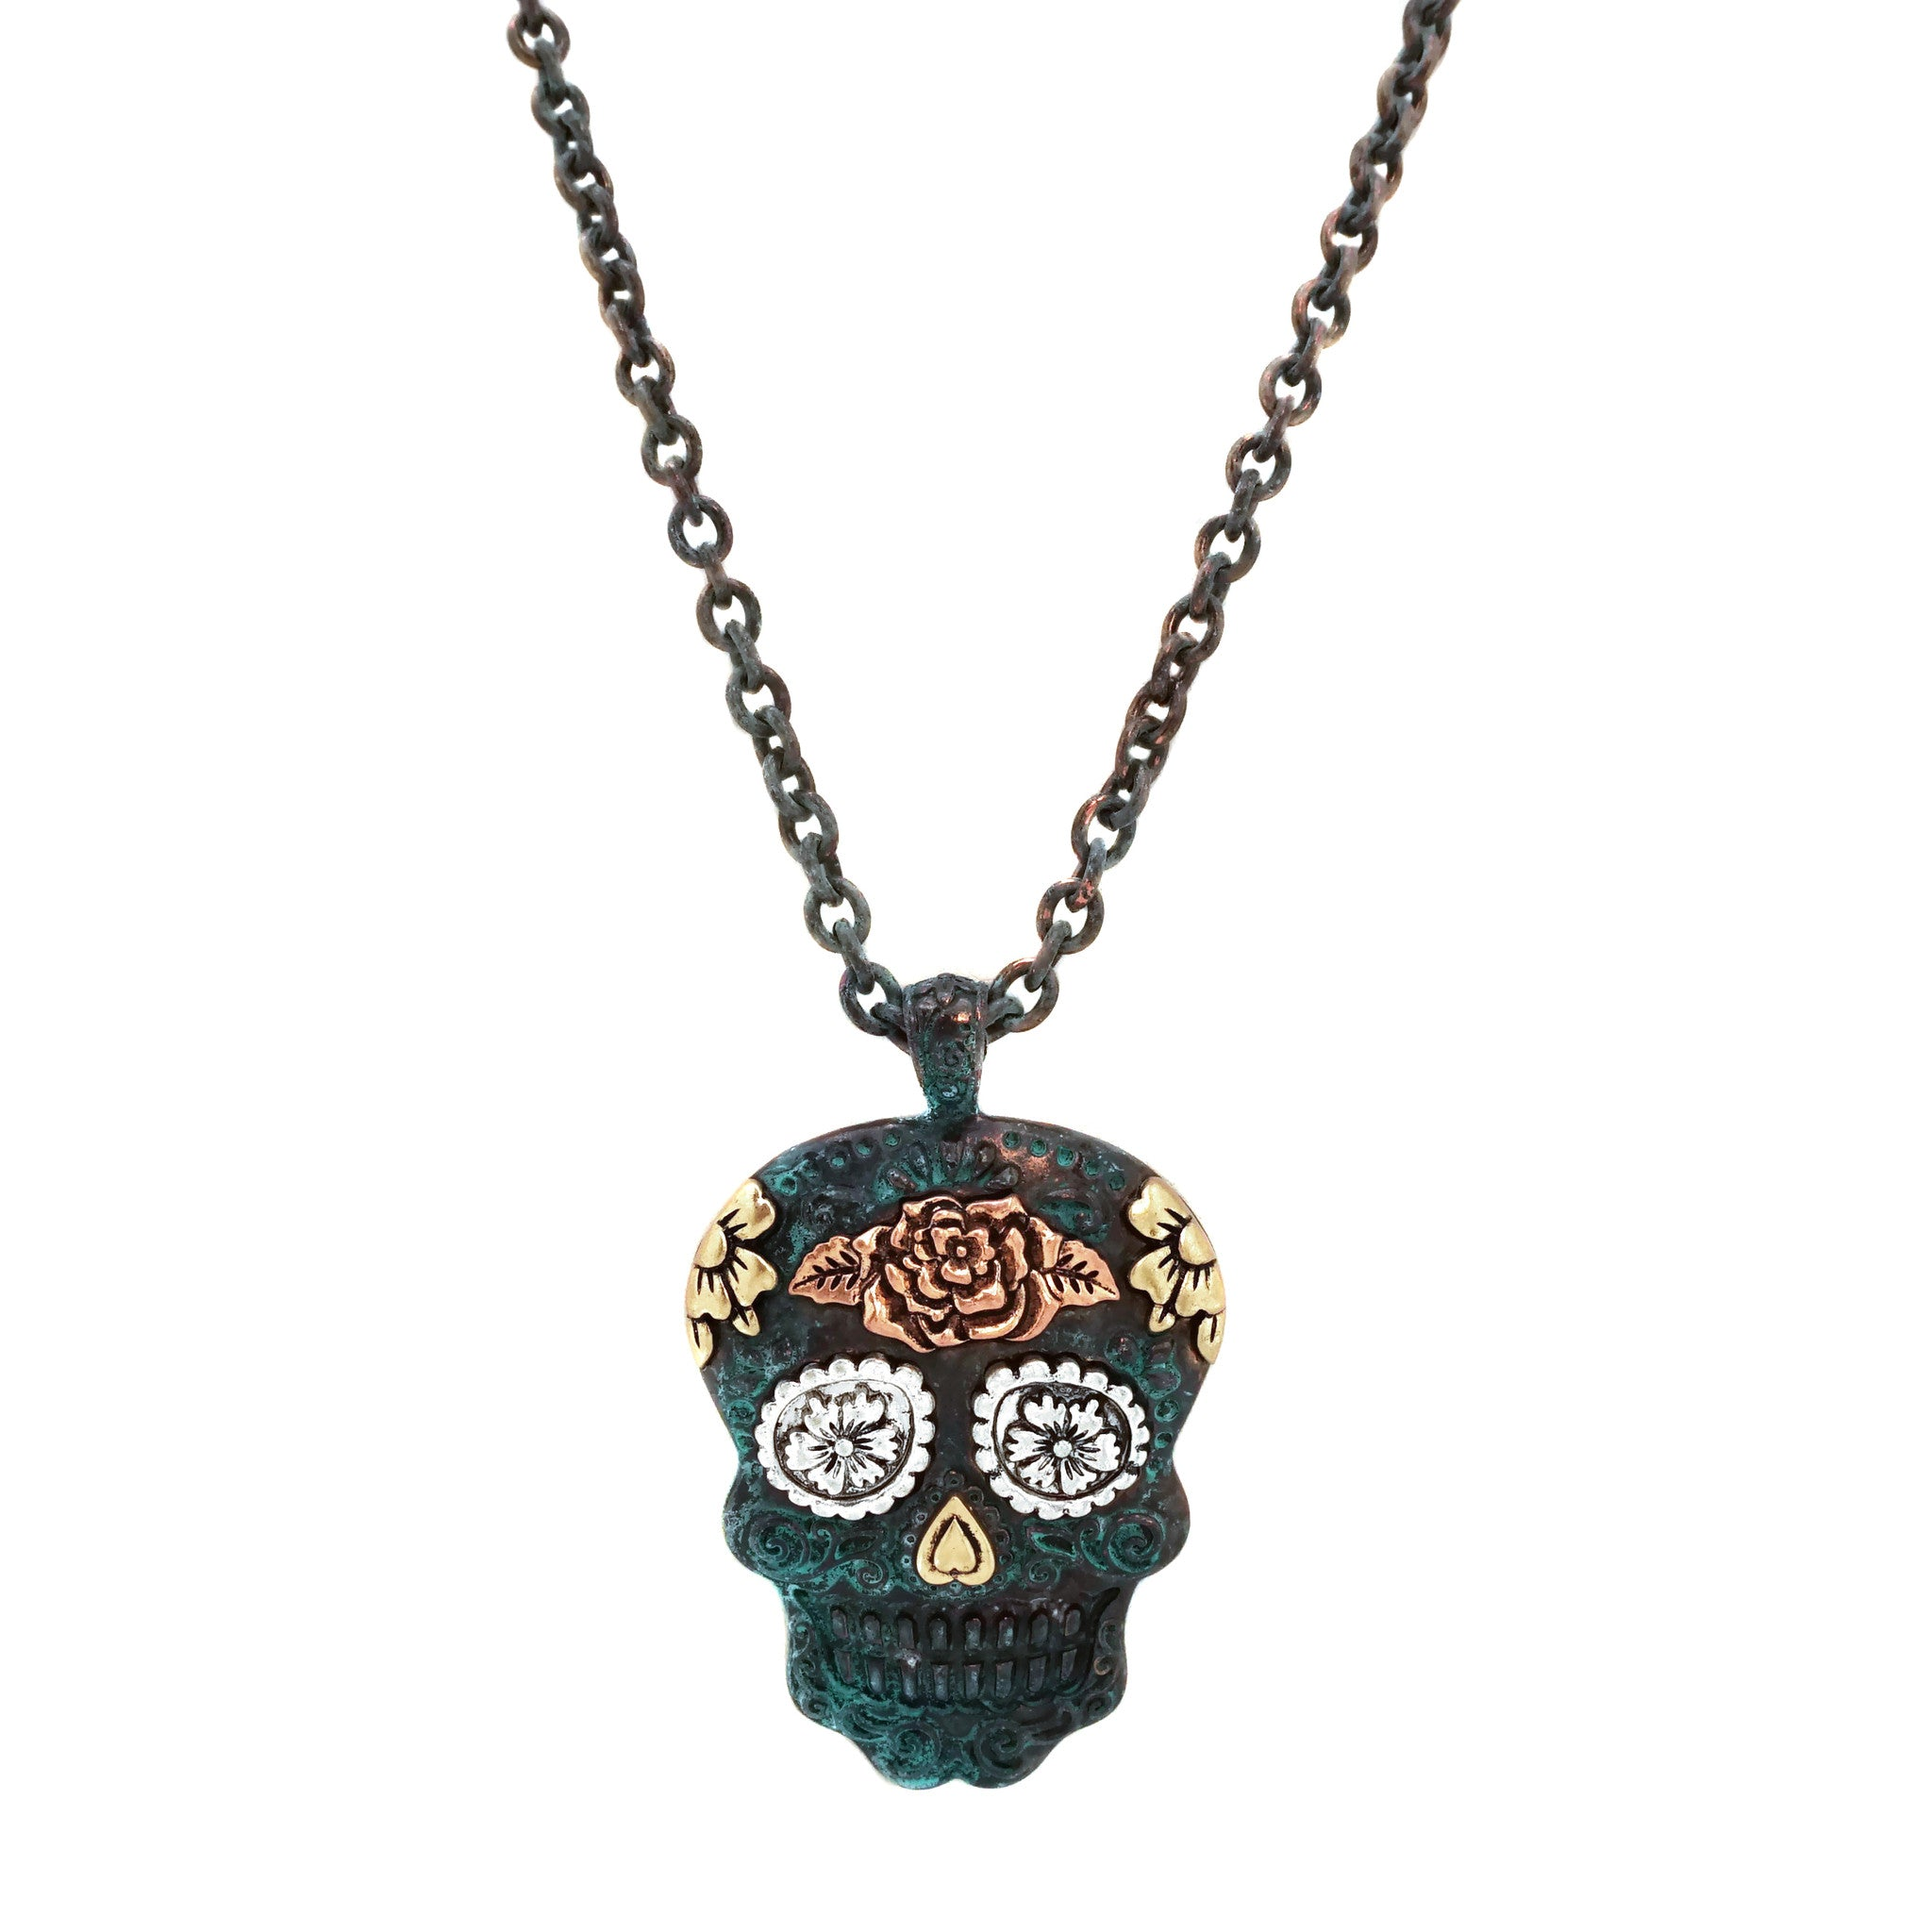 ca london mini skull silver en pendant of hires necklace sterling links